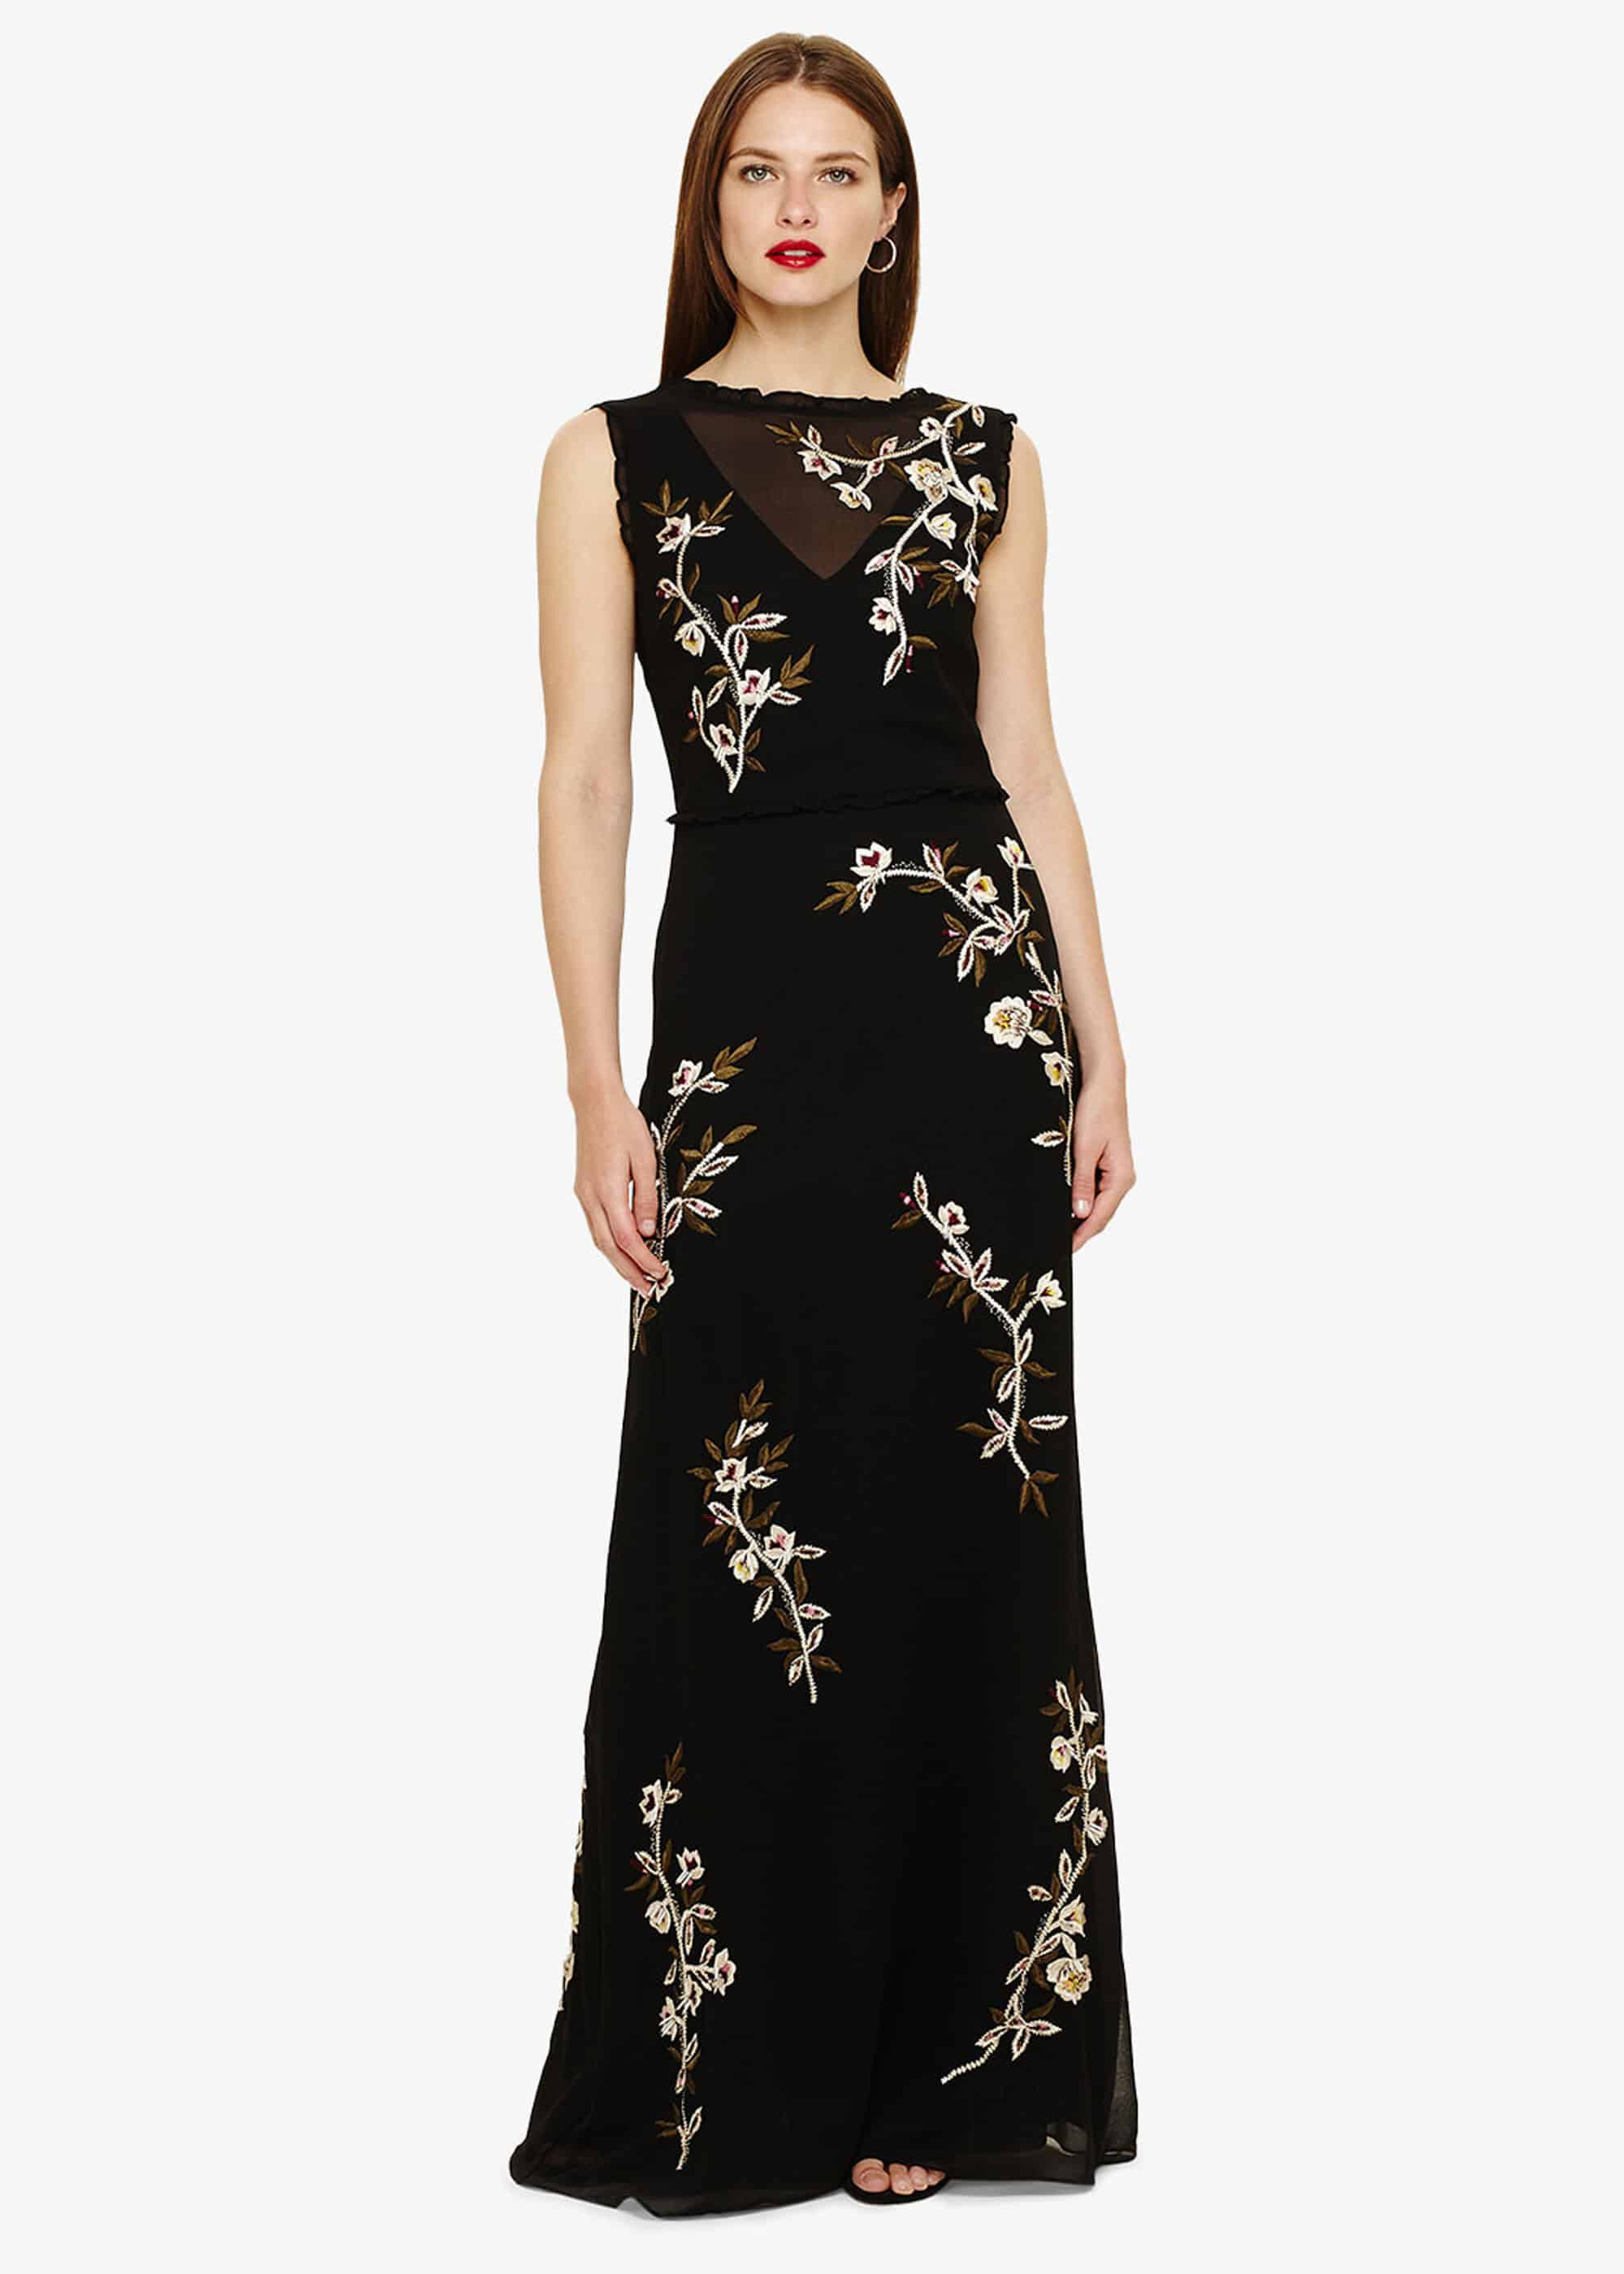 Phase Eight Abigail Floral Maxi Dress, Black, Maxi